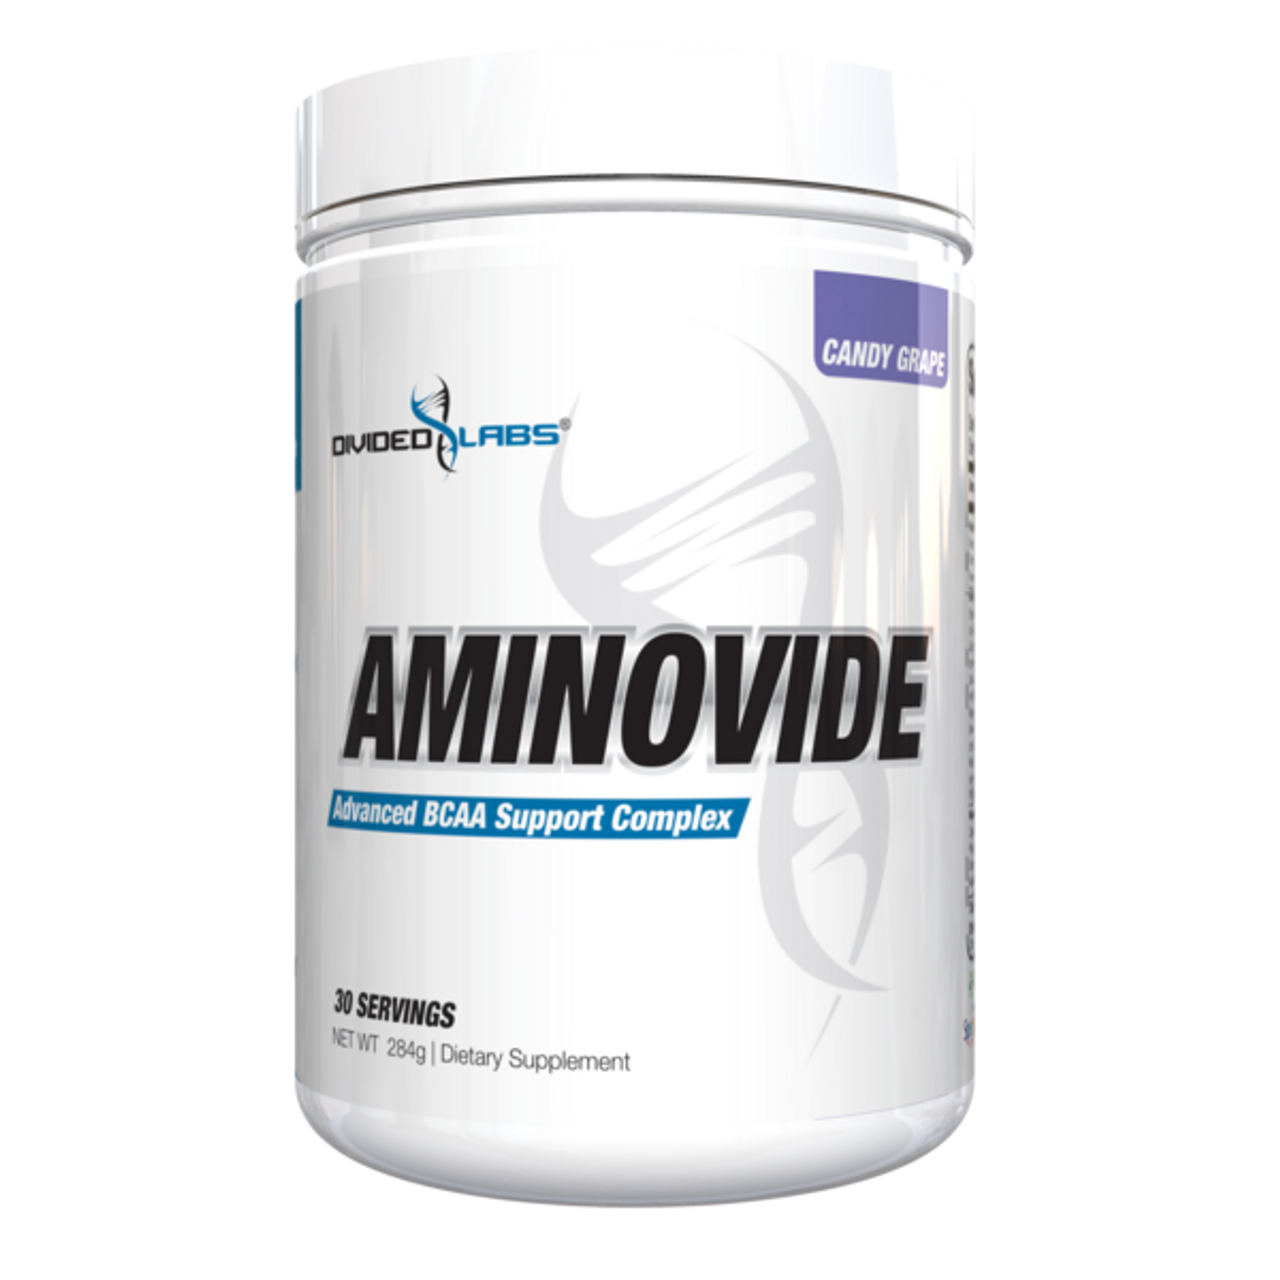 AMINOVIDE 30sv Divided Labs